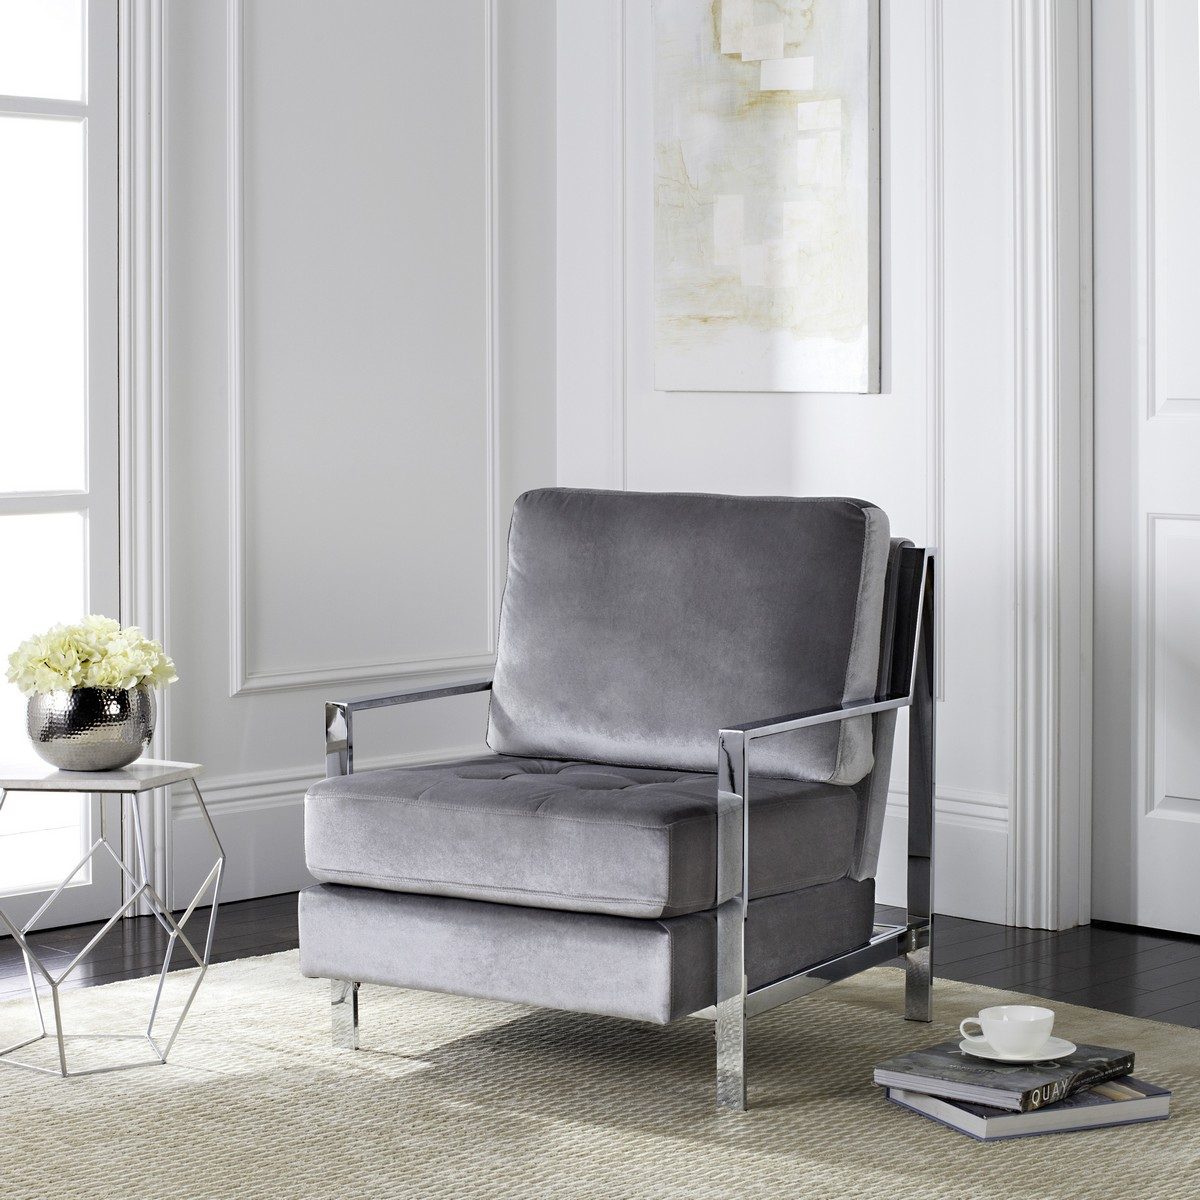 What Color Accent Chair With Grey Sofa: FOX6279C Accent Chairs